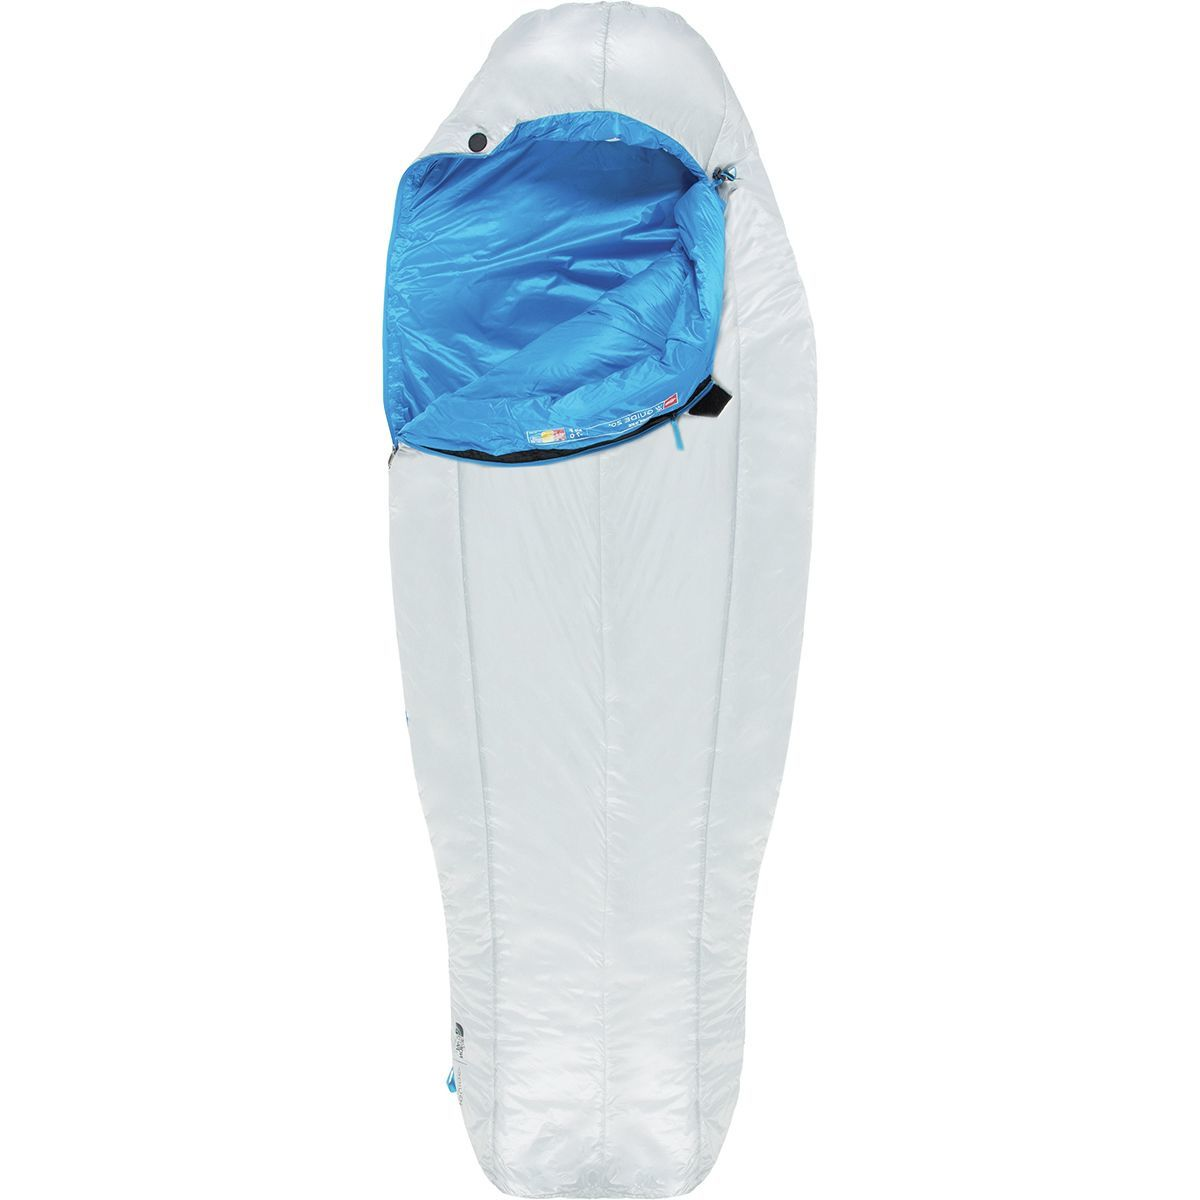 The North Face Guide 20 Synthetic Sleeping Bag - Women's